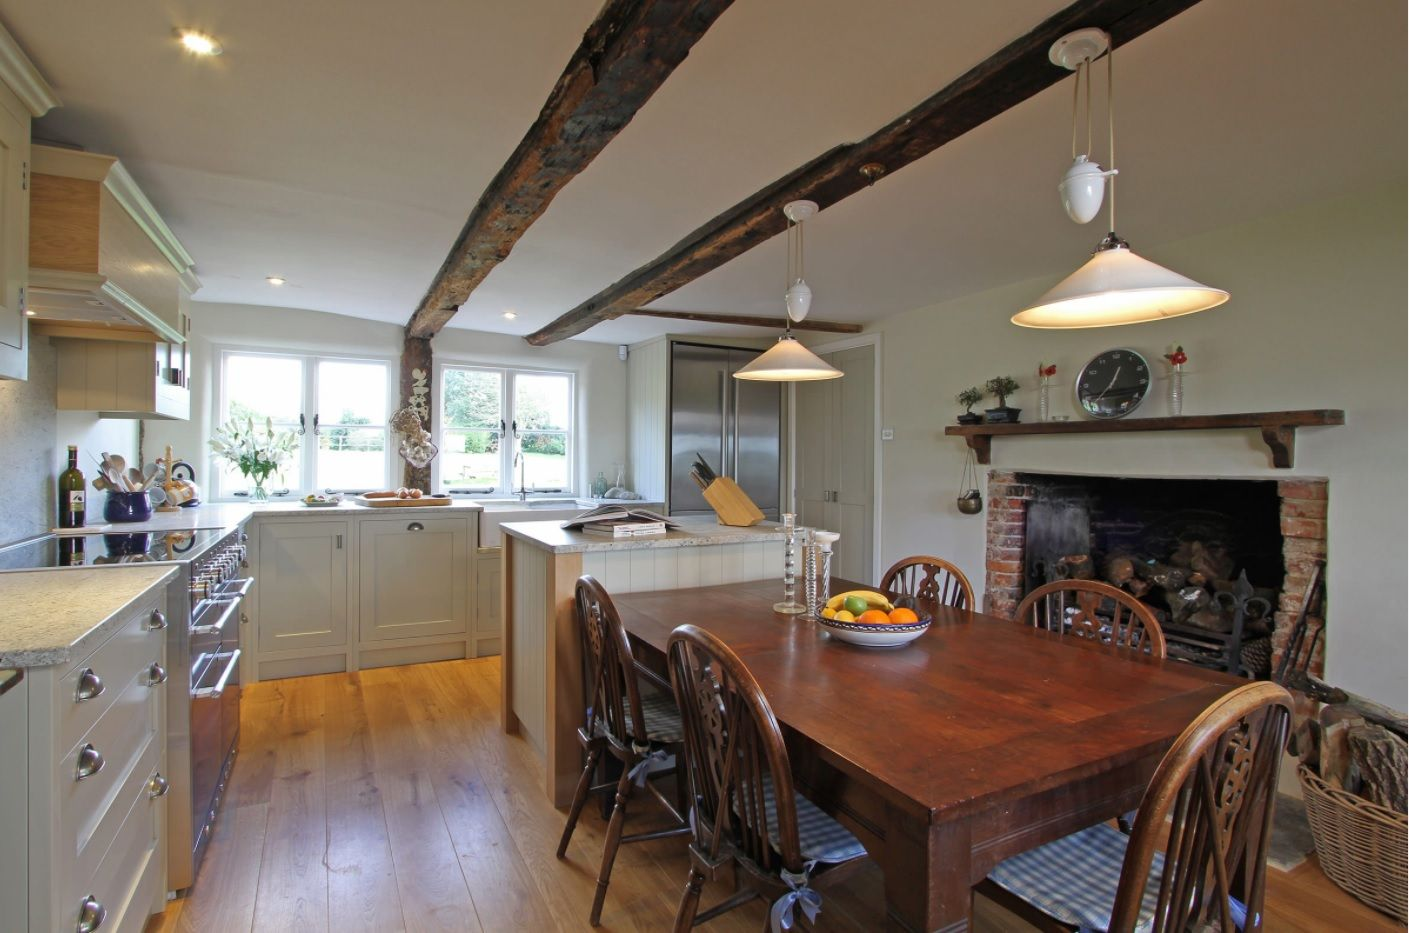 Bespoke Kitchen Interior Photos & Design Ideas. Open ceiling beams, natural wood in the dining zone